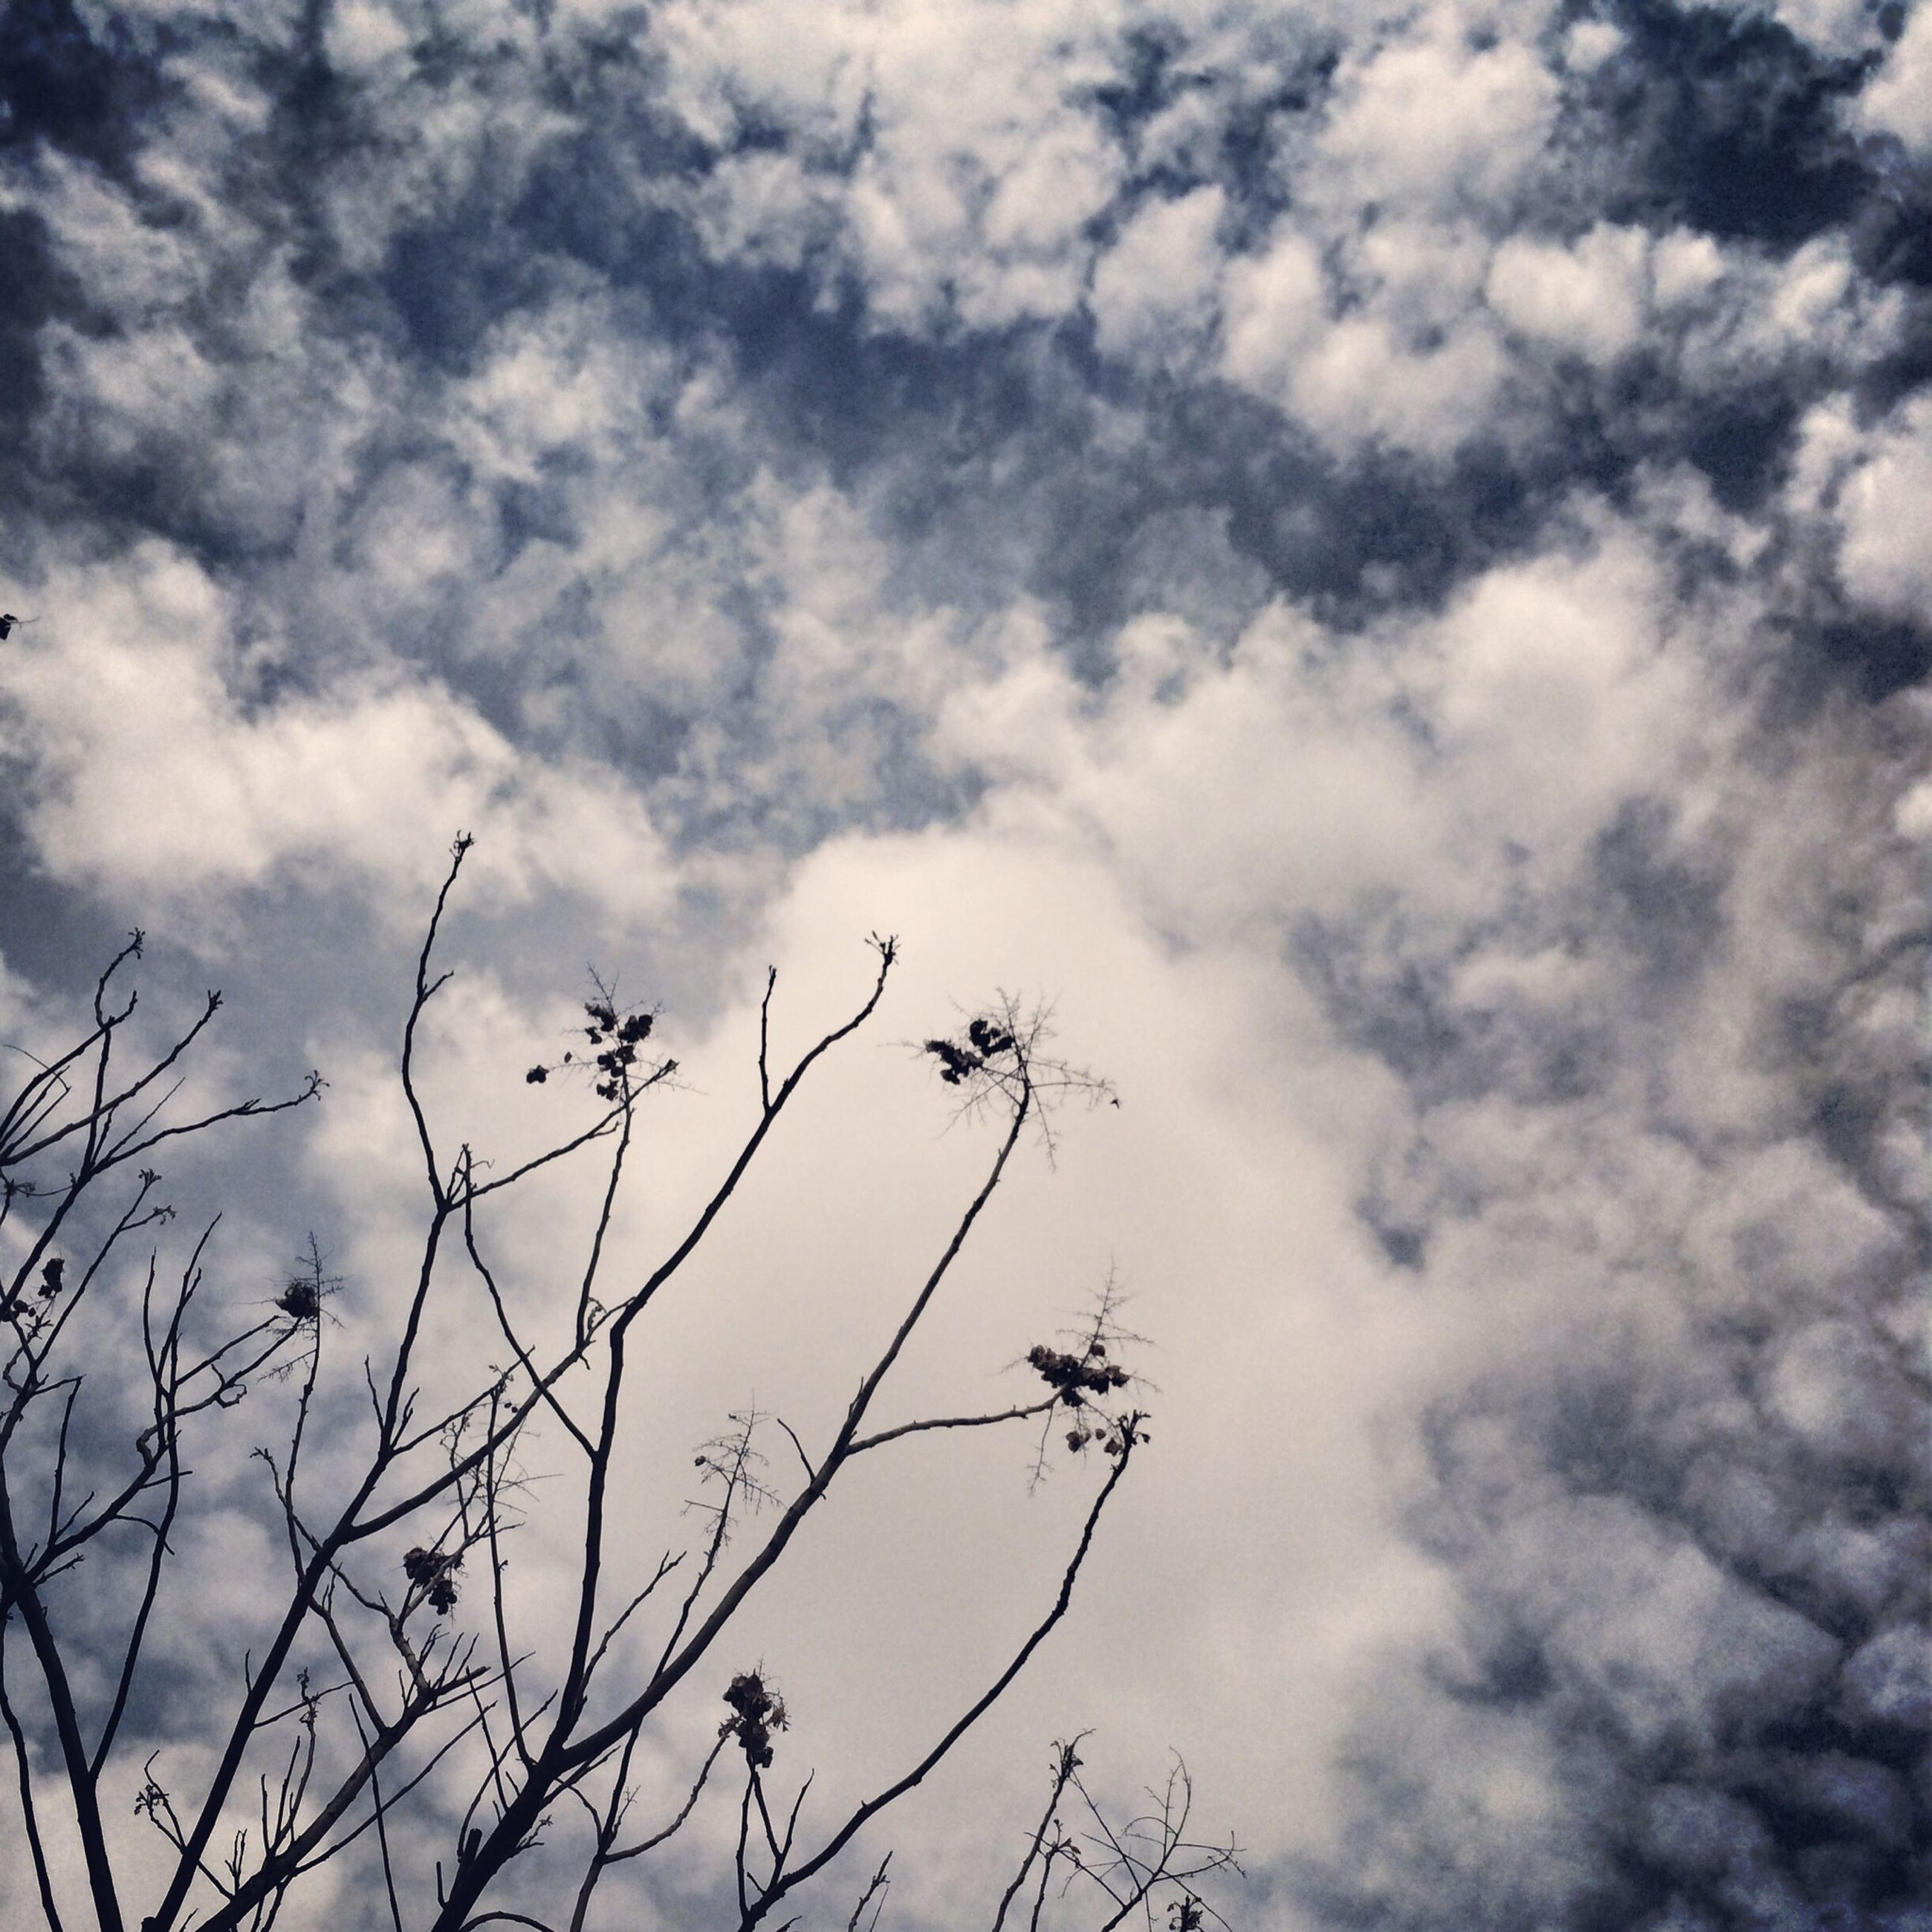 sky, low angle view, cloud - sky, cloudy, nature, tranquility, beauty in nature, branch, cloud, tree, scenics, bare tree, growth, tranquil scene, outdoors, day, silhouette, no people, weather, overcast